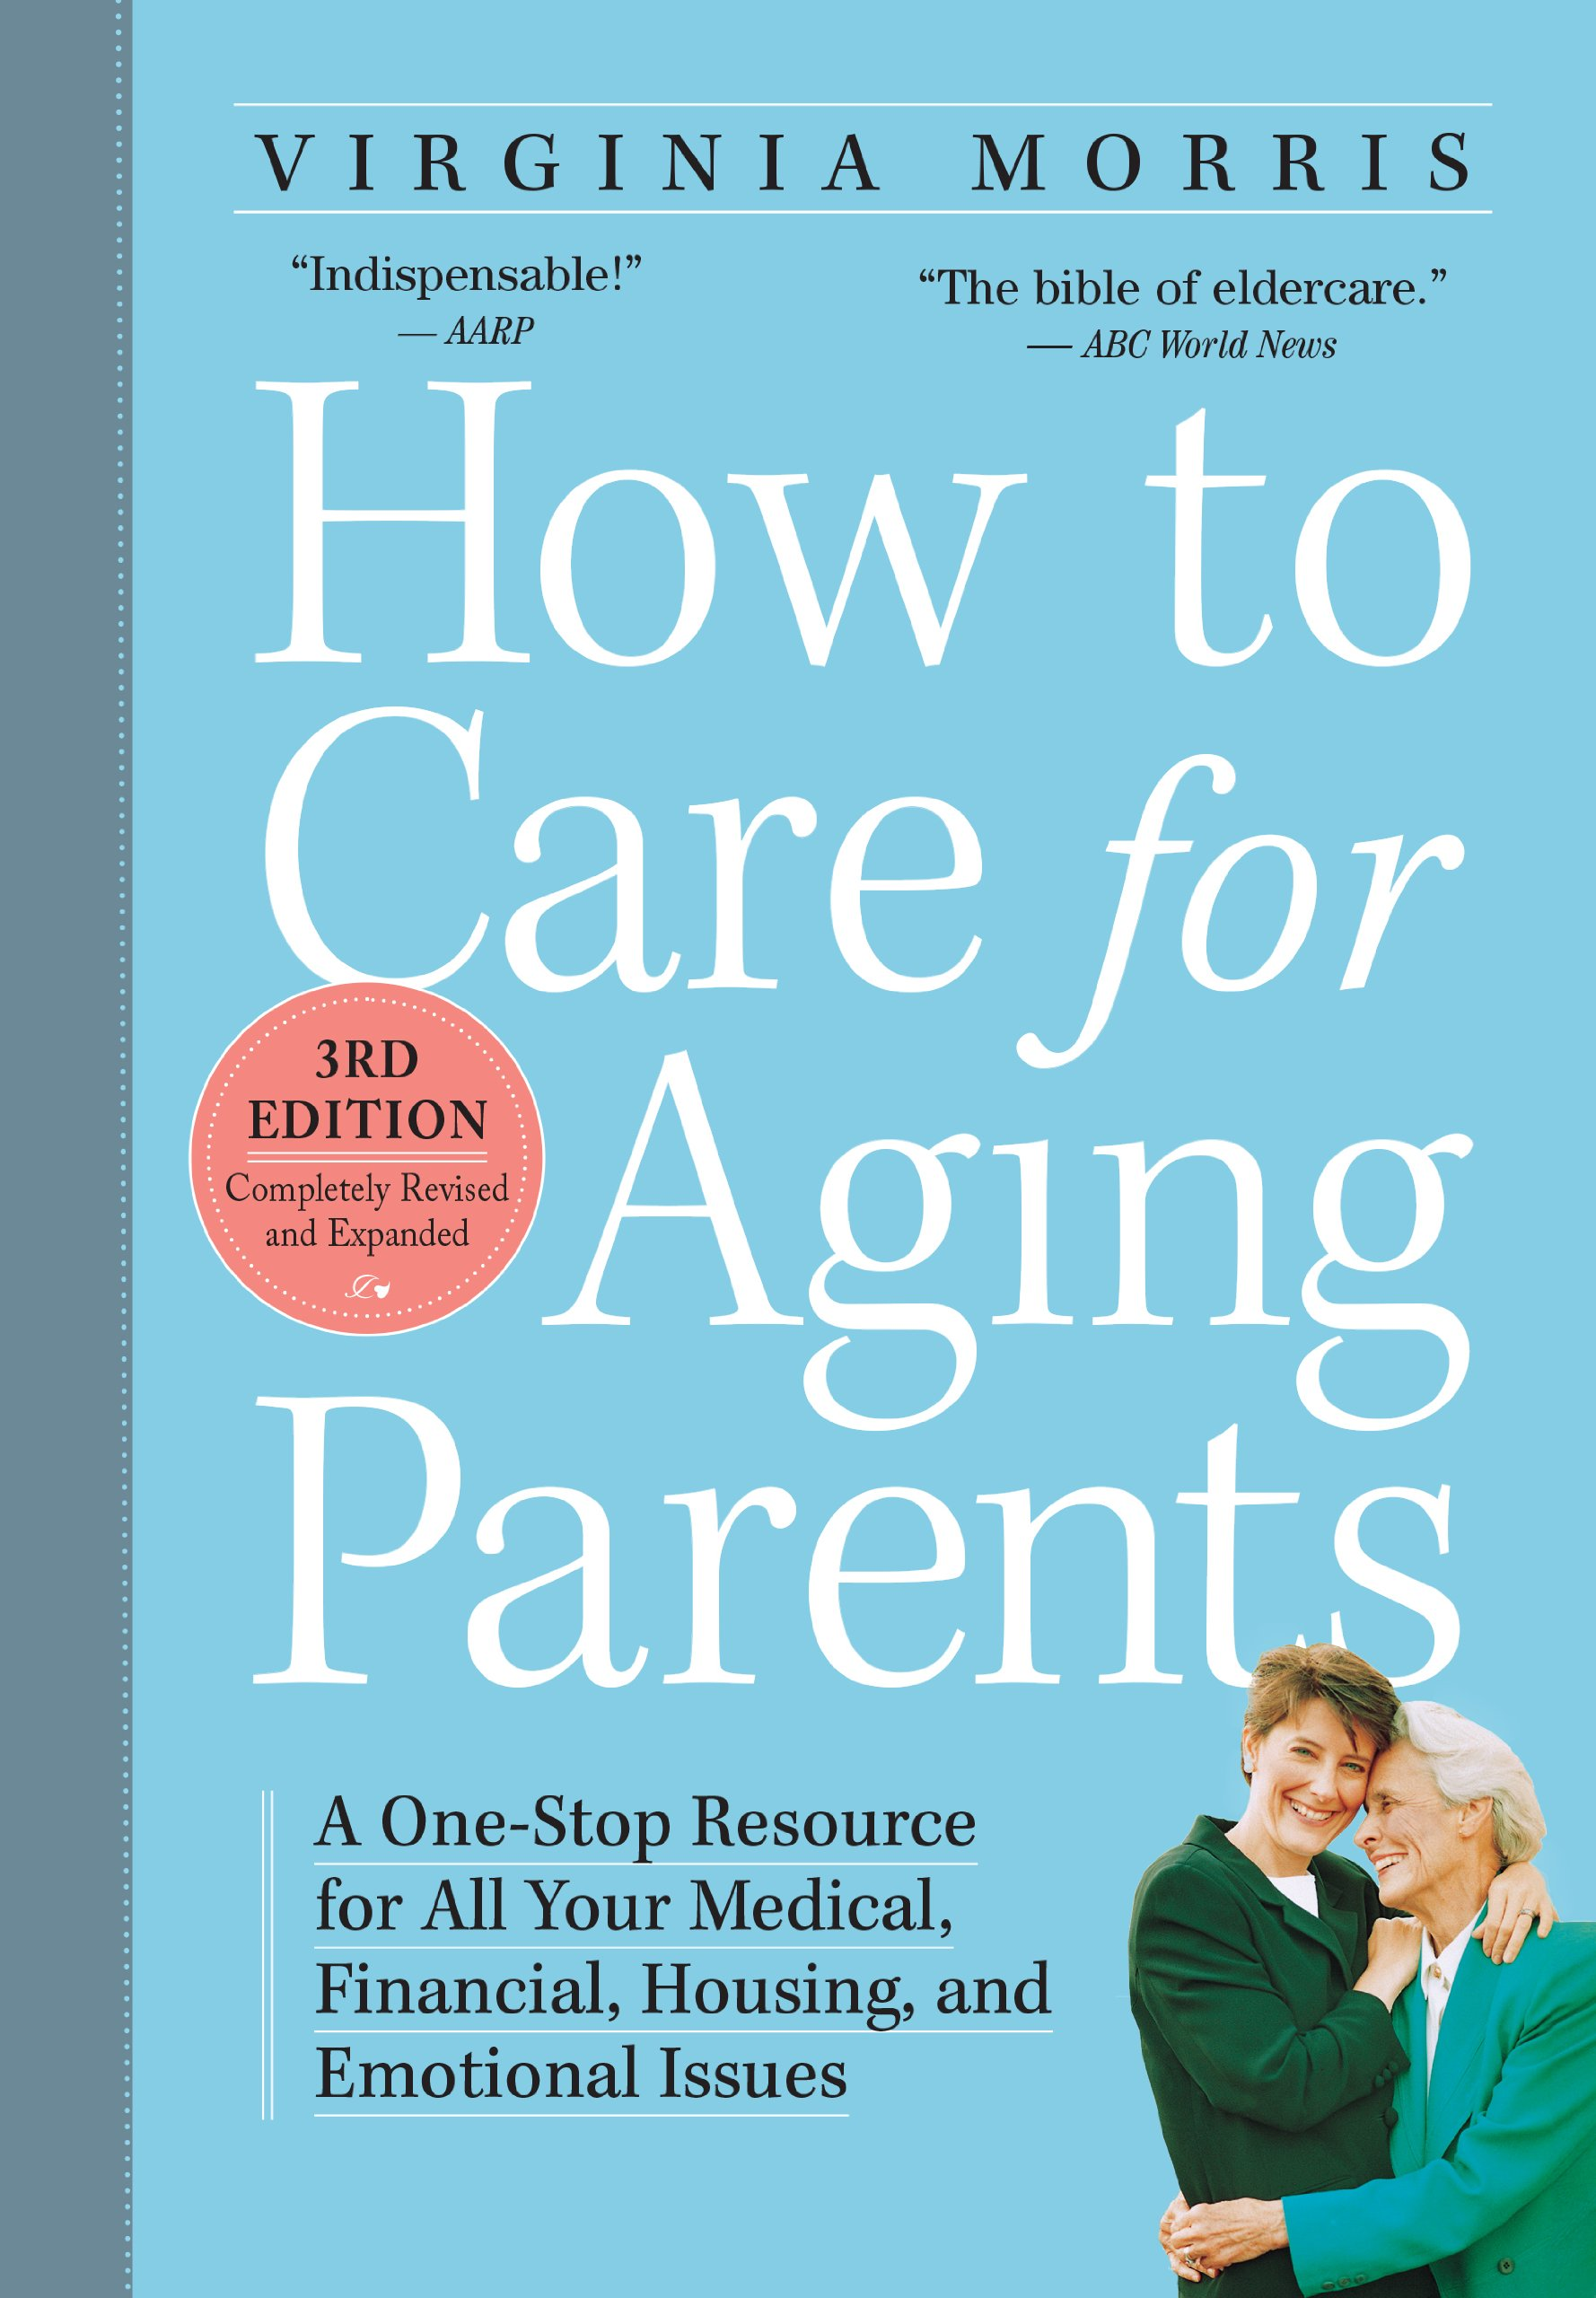 How Care Aging Parents 3rd product image